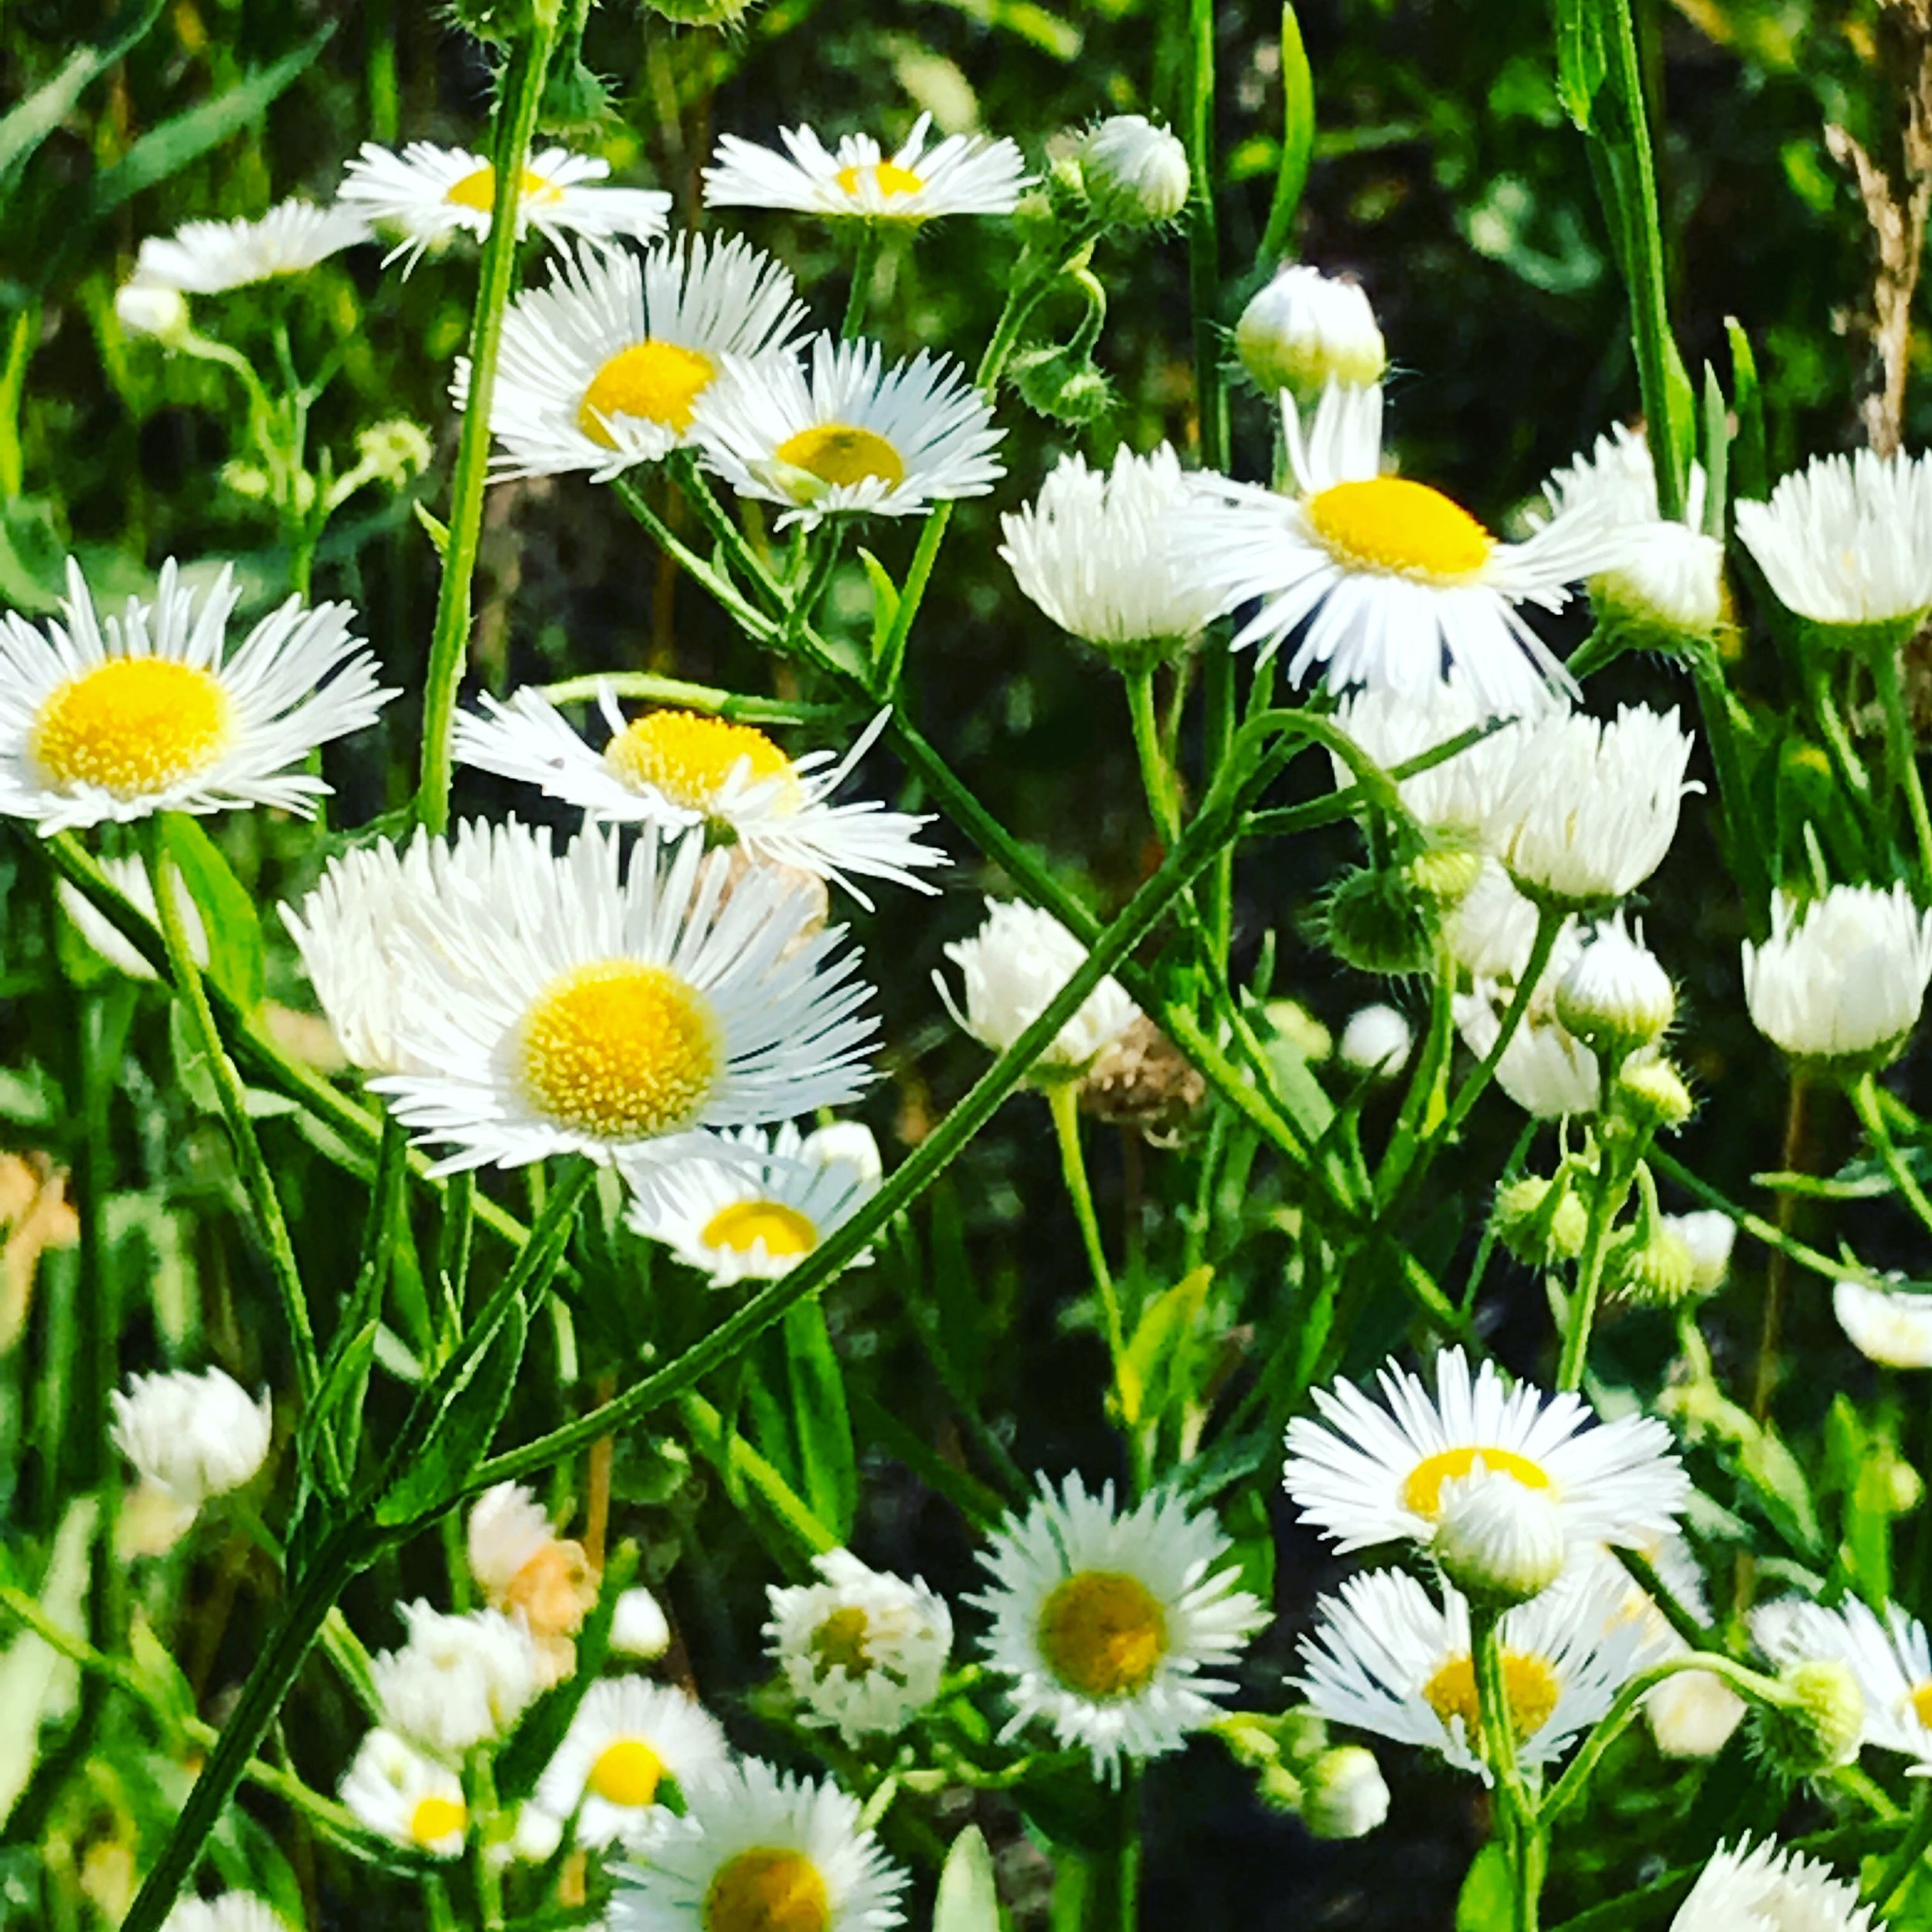 Daisy fleabane in the morning meadow